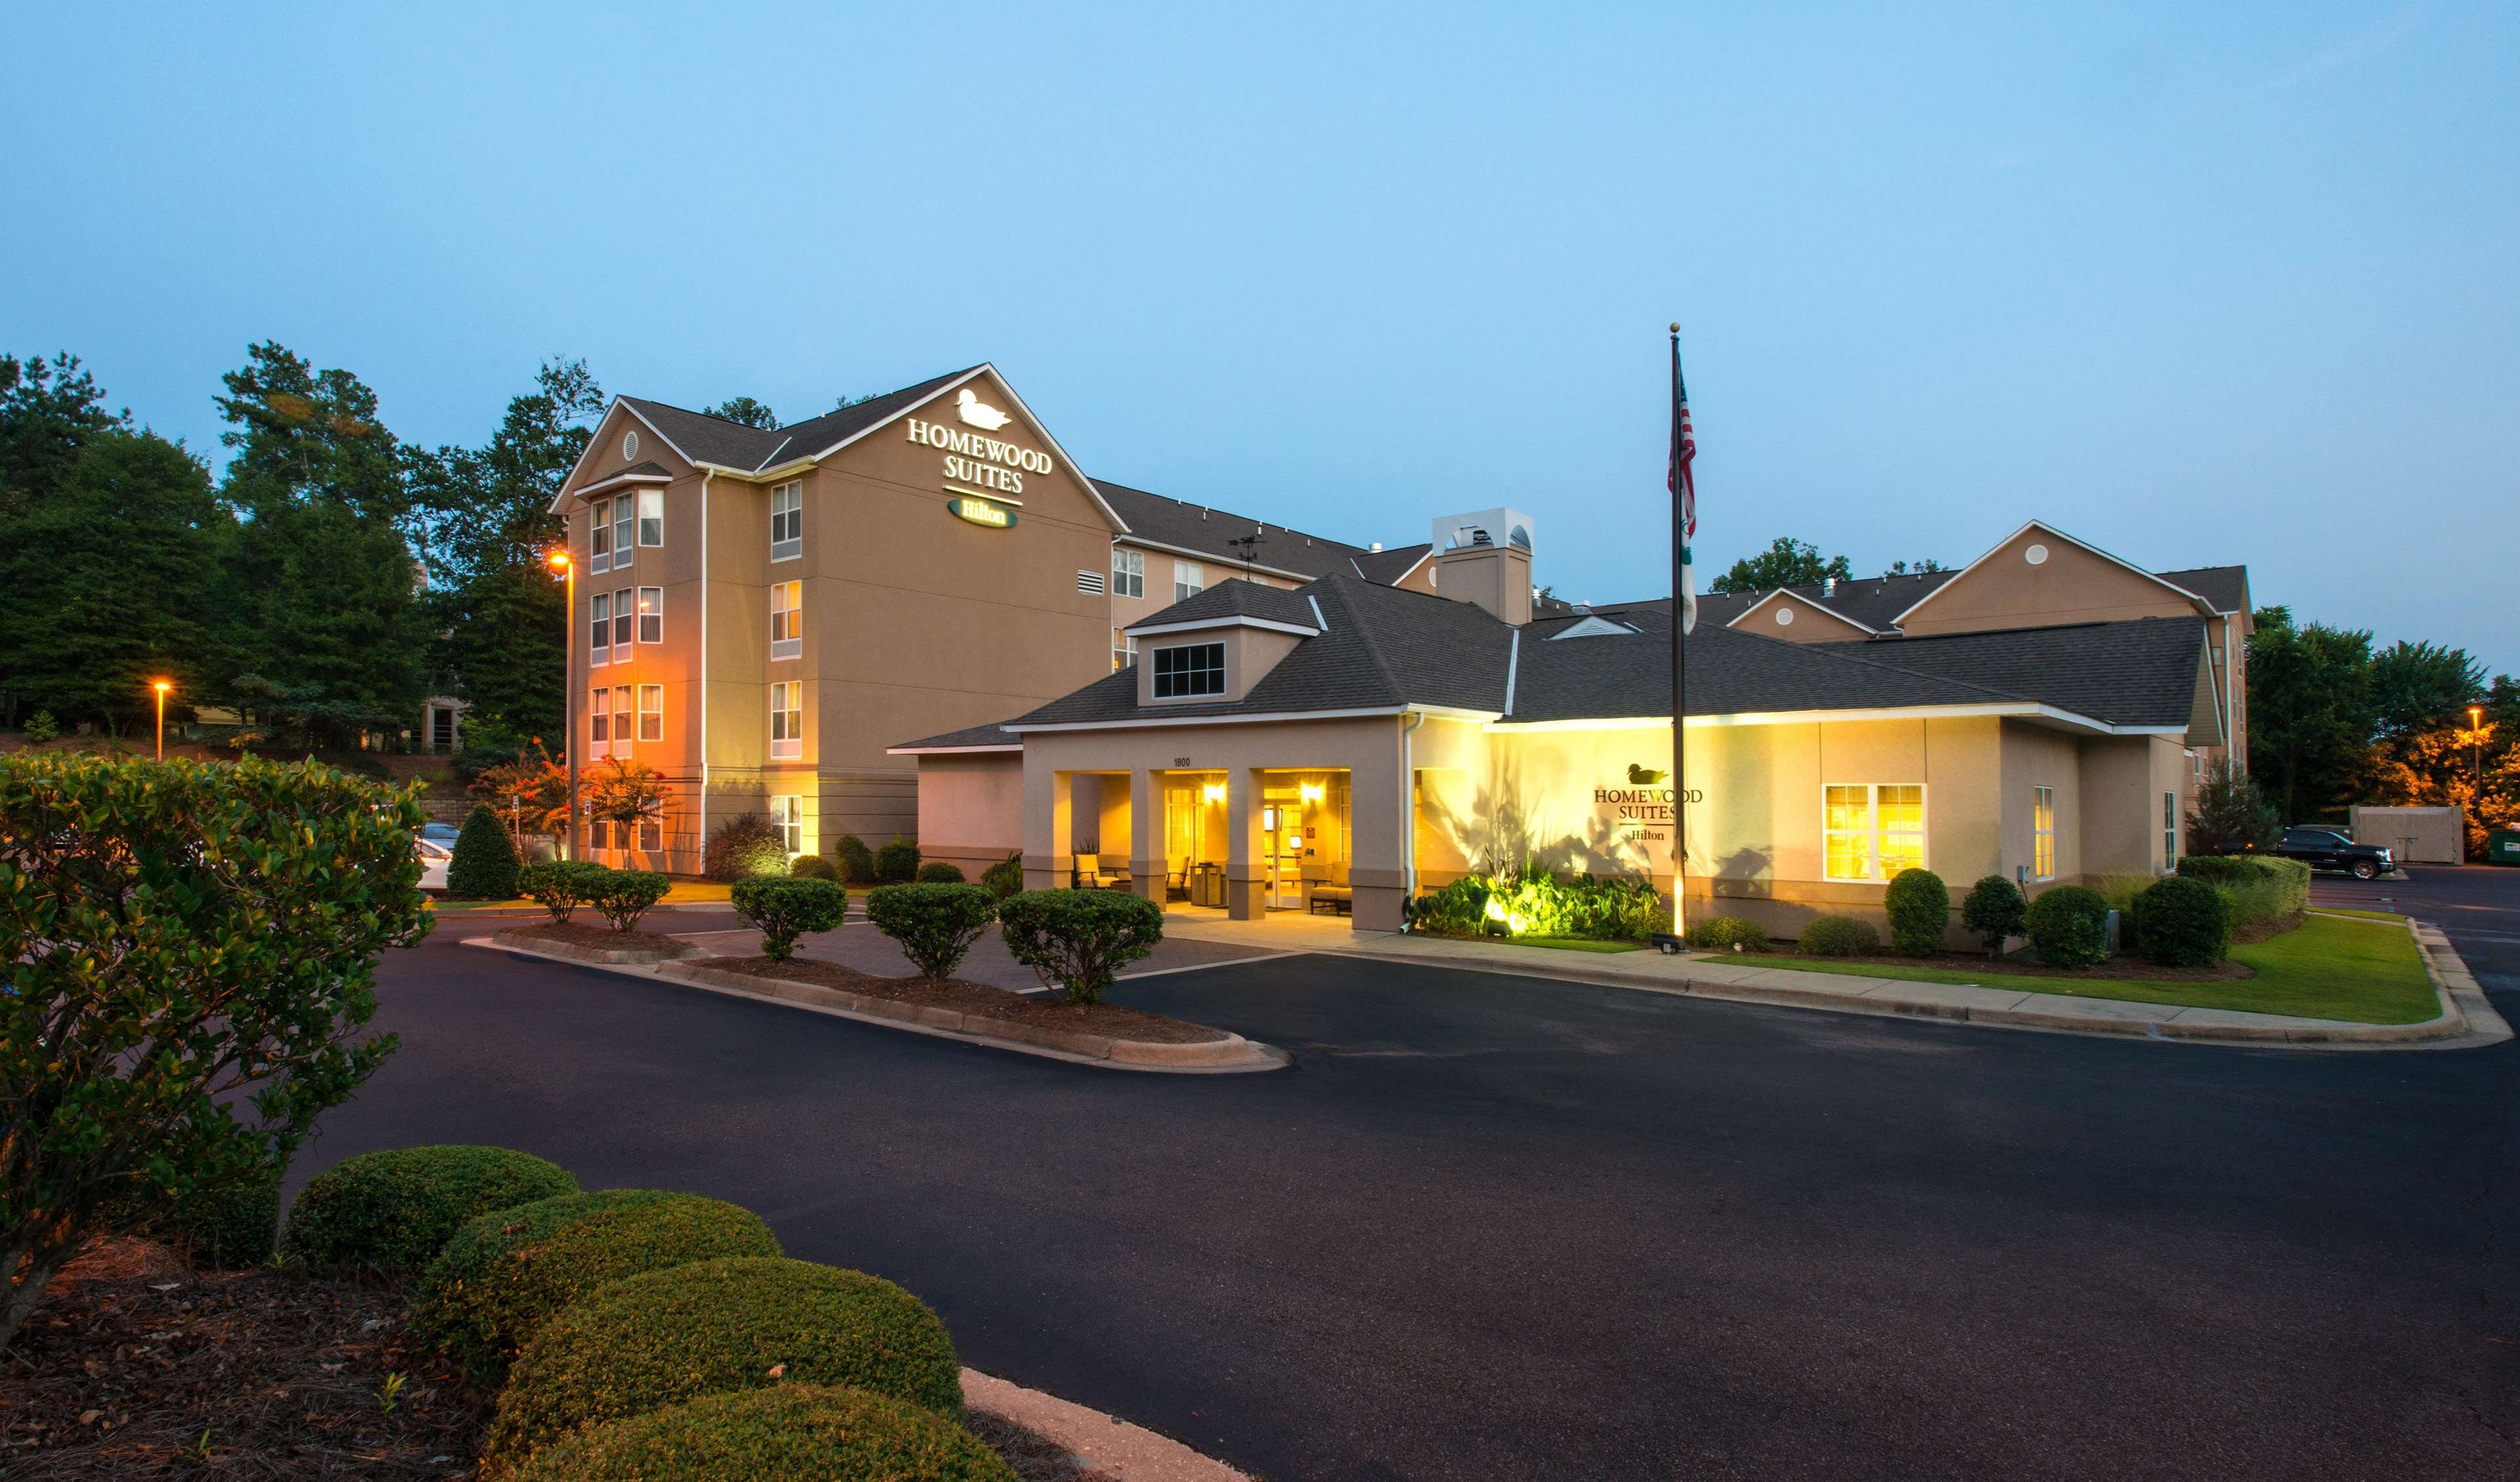 Homewood Suites by Hilton Montgomery image 0